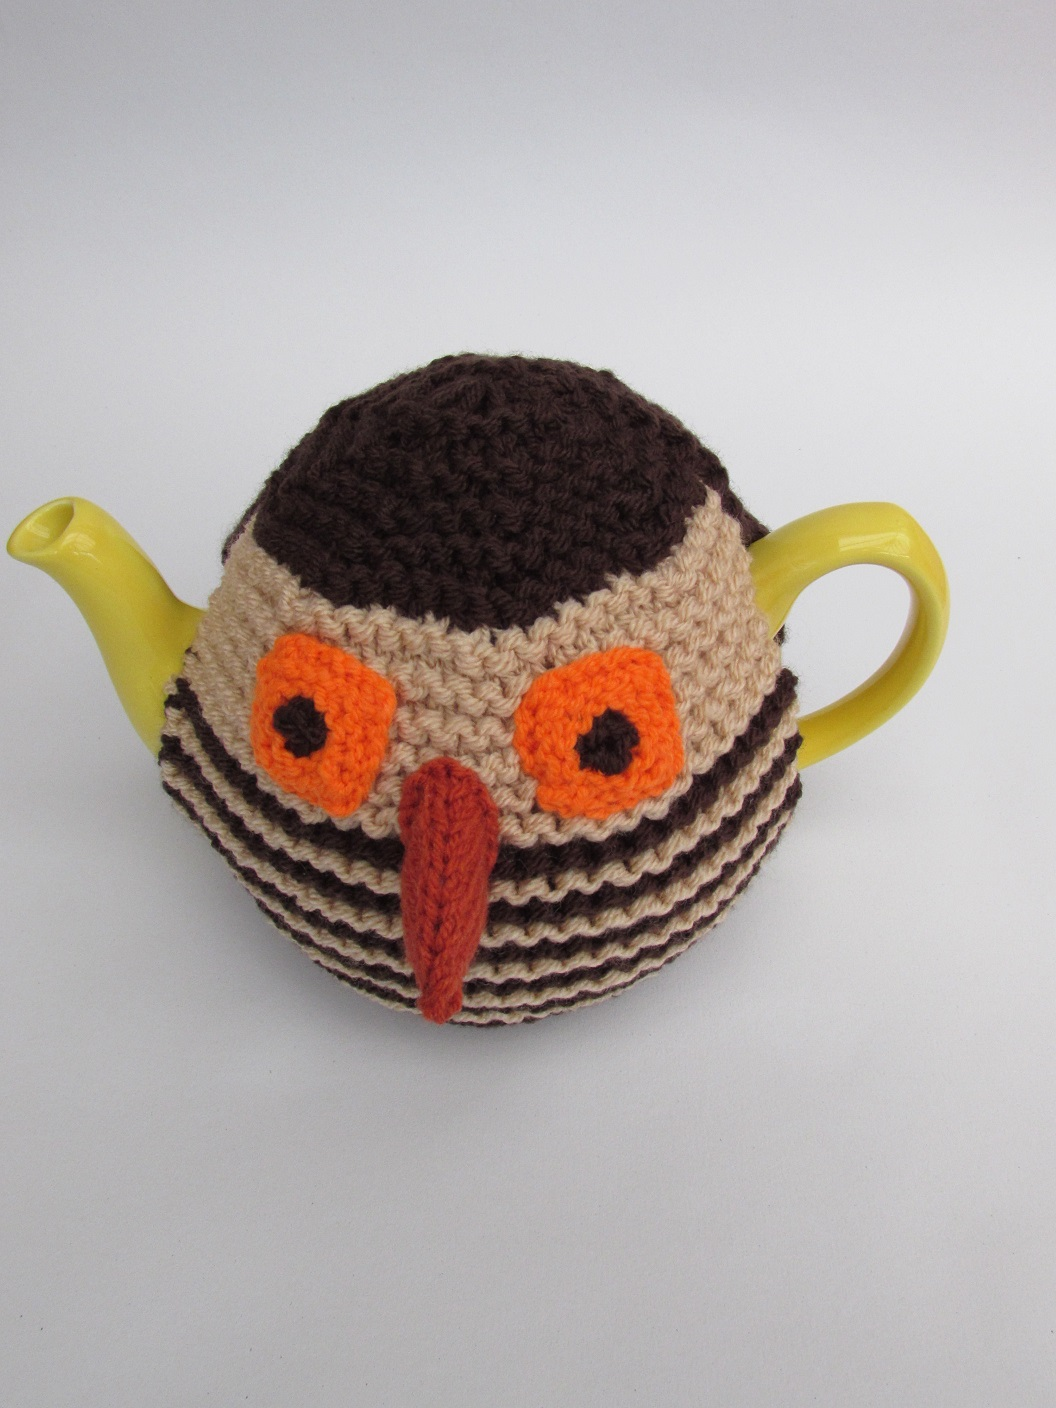 Knitted Owl Tea Cosy Pattern : Ernest Owl tea cosy knitting pattern